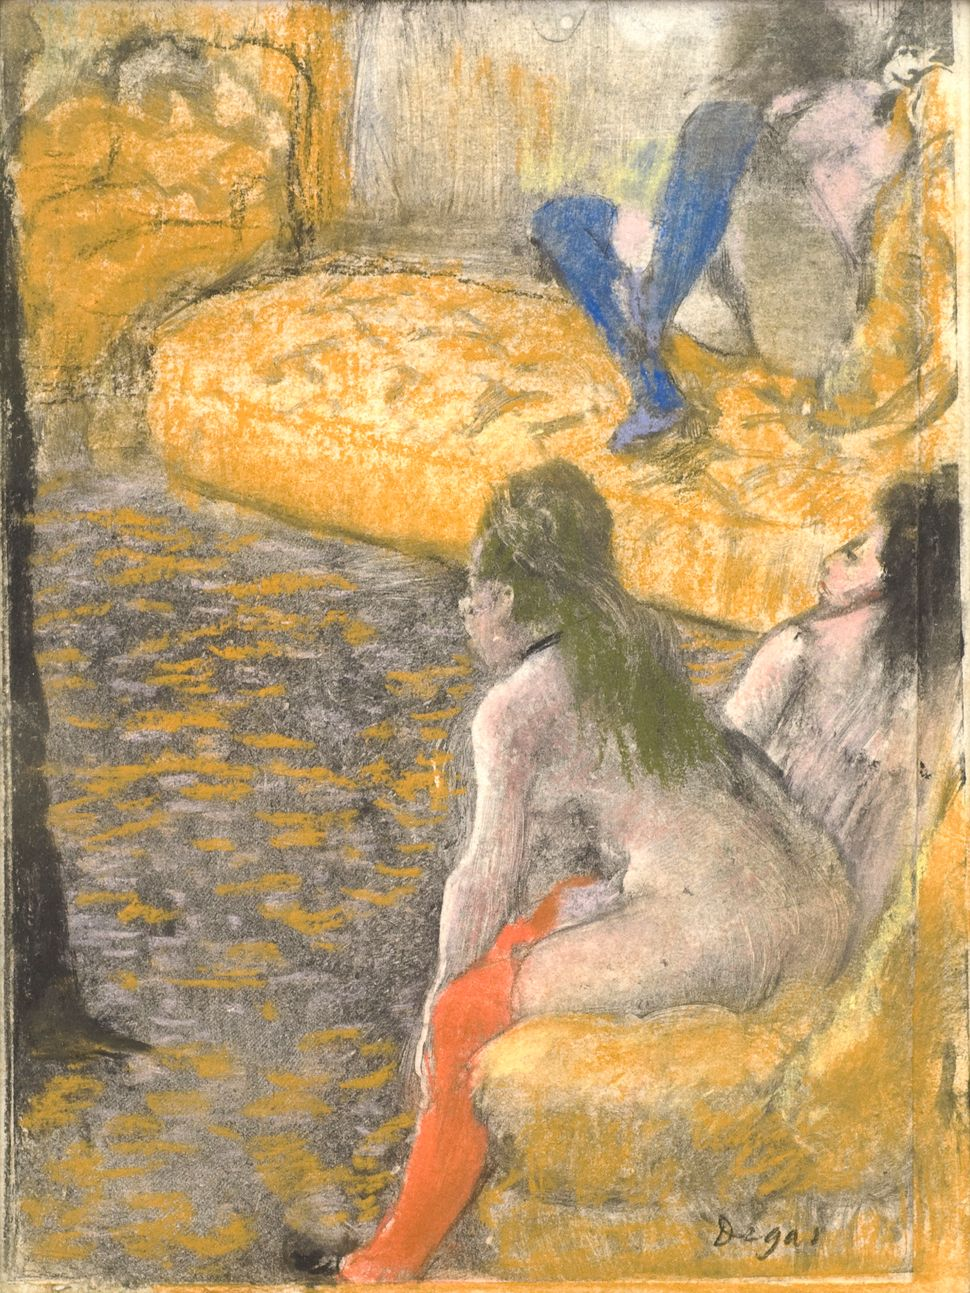 <br>Edgar Degas (French, 1834&ndash;1917). <i>Waiting for a Client</i>, 1879. Charcoal and pastel over monotype on paper. Pla